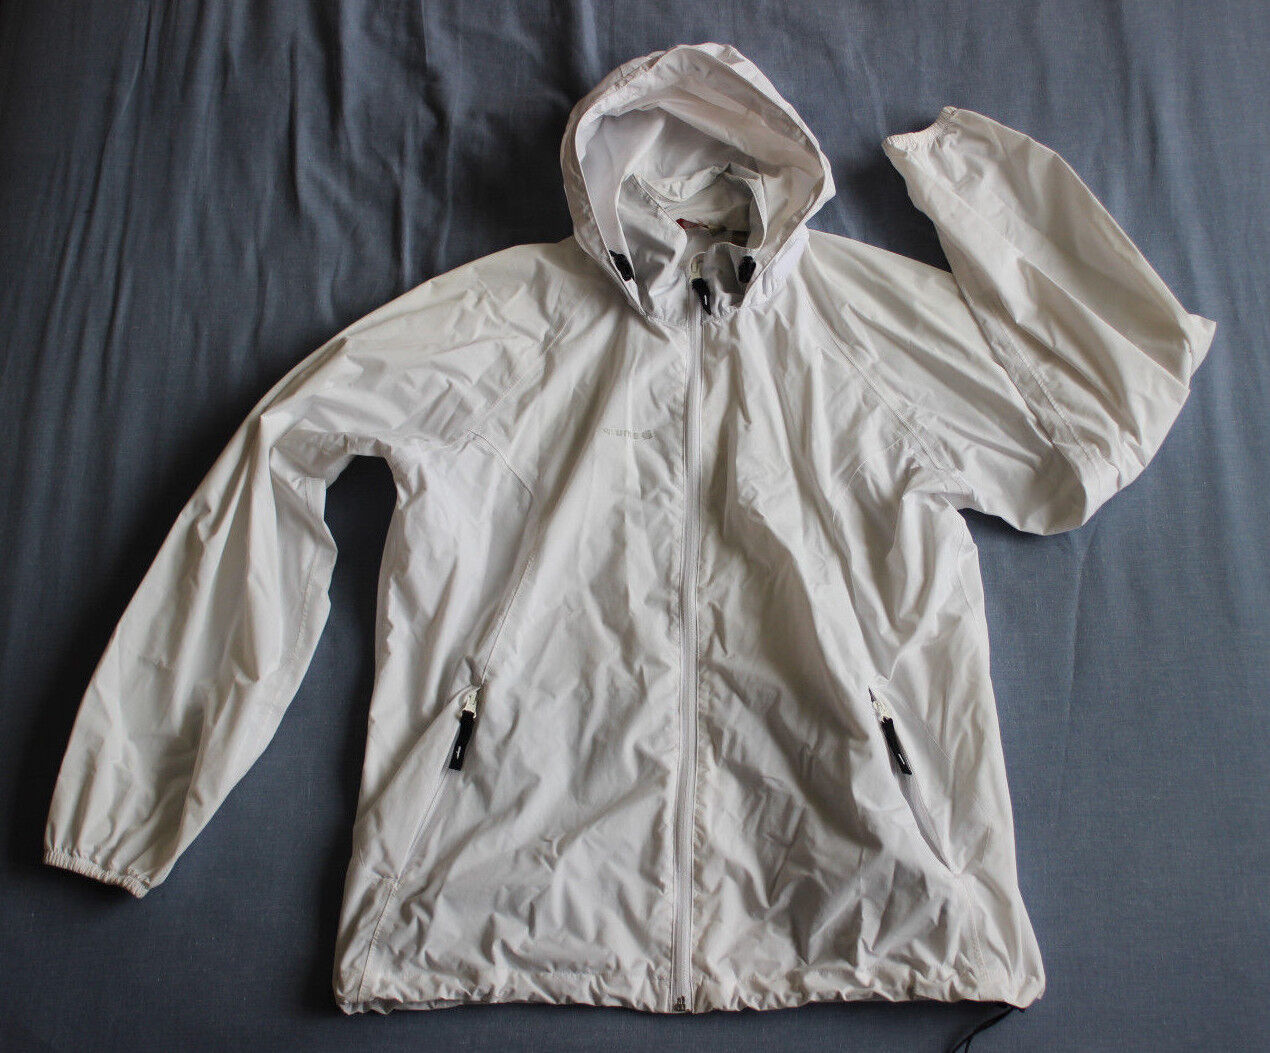 Lafuma Women's White Raincoat Coat Size XL Good Used Condition